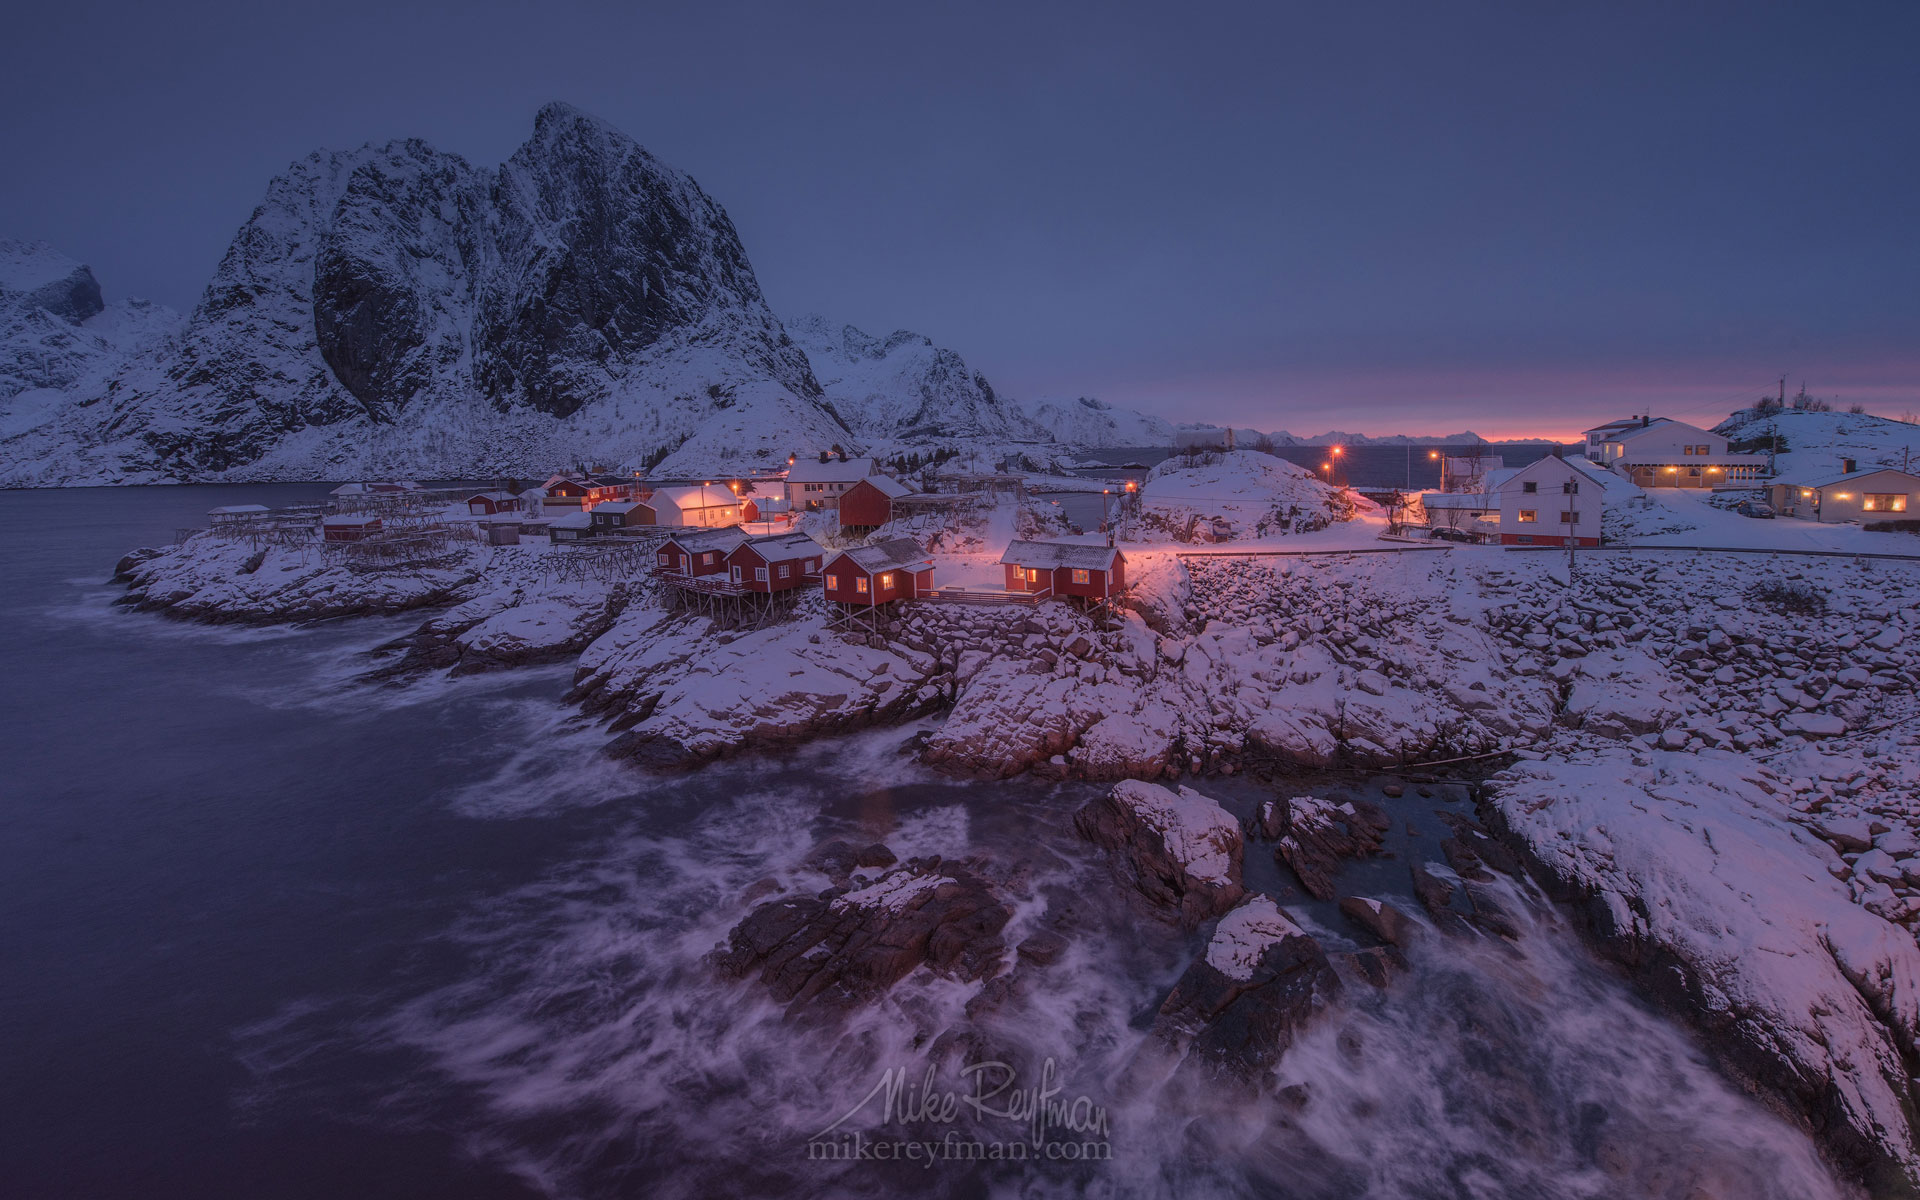 Fishing huts (rorbuer) of the Hamnoy with Lilandstinden mountain on the beckground. Moskenes, Lofoten archipelago, Norway. LF-MRD1E1854 - Lofoten Archipelago in Winter, Arctic Norway - Mike Reyfman Photography